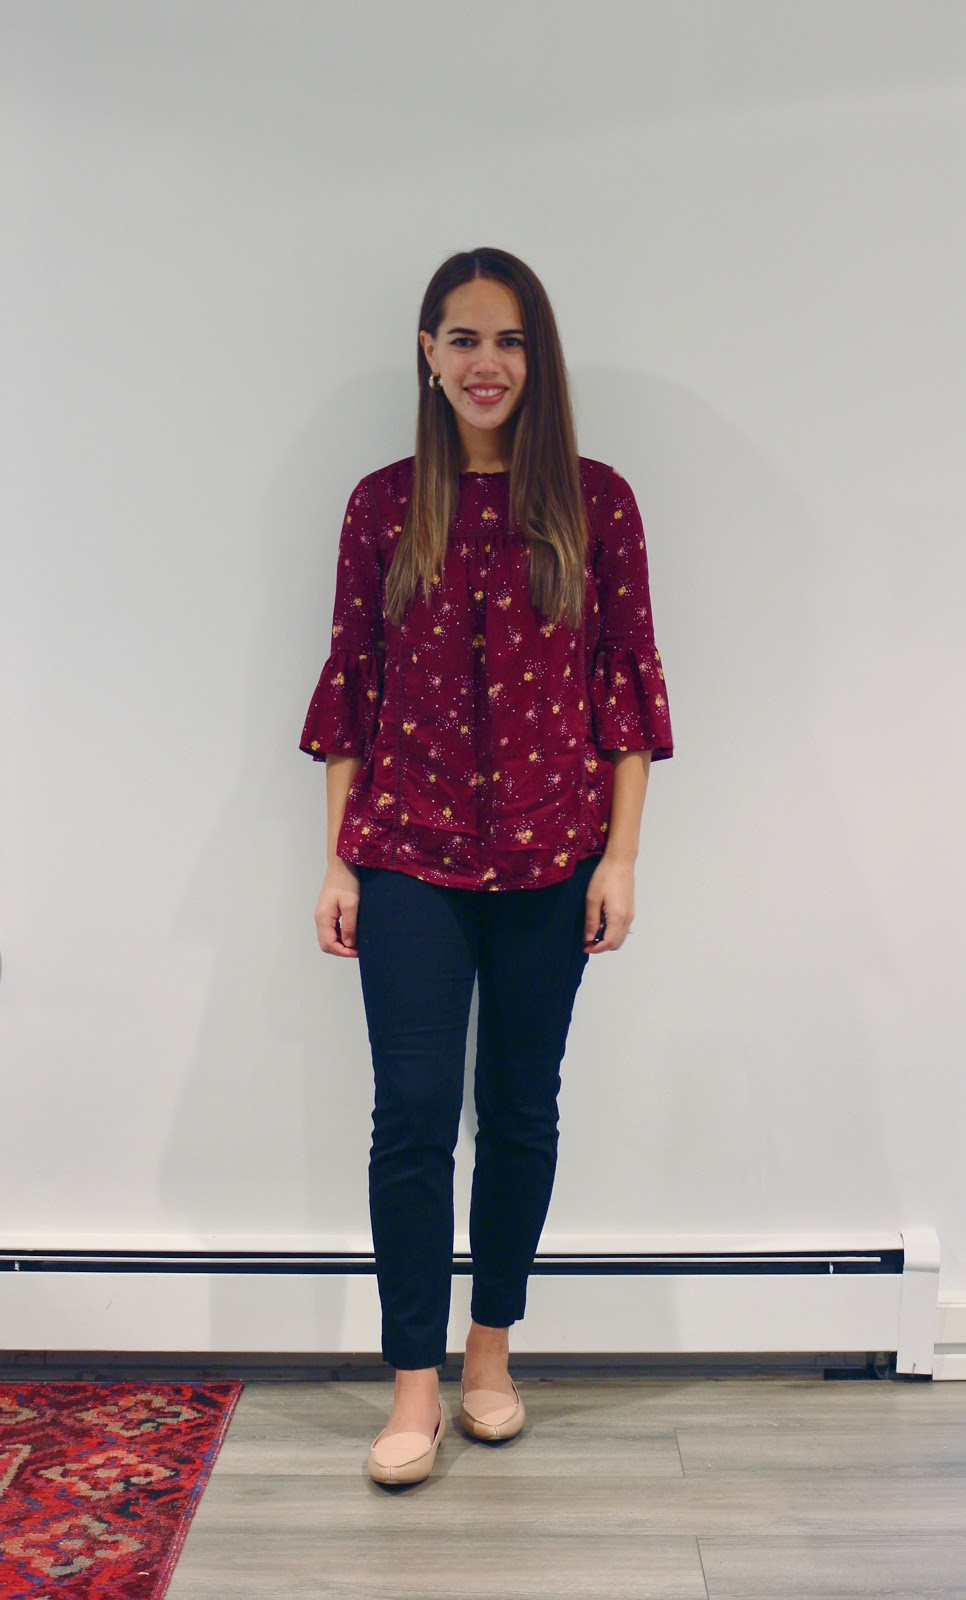 Jules in Flats - Lightweight Ruffle Trim Flower Print Top (Business Casual Workwear on a Budget)